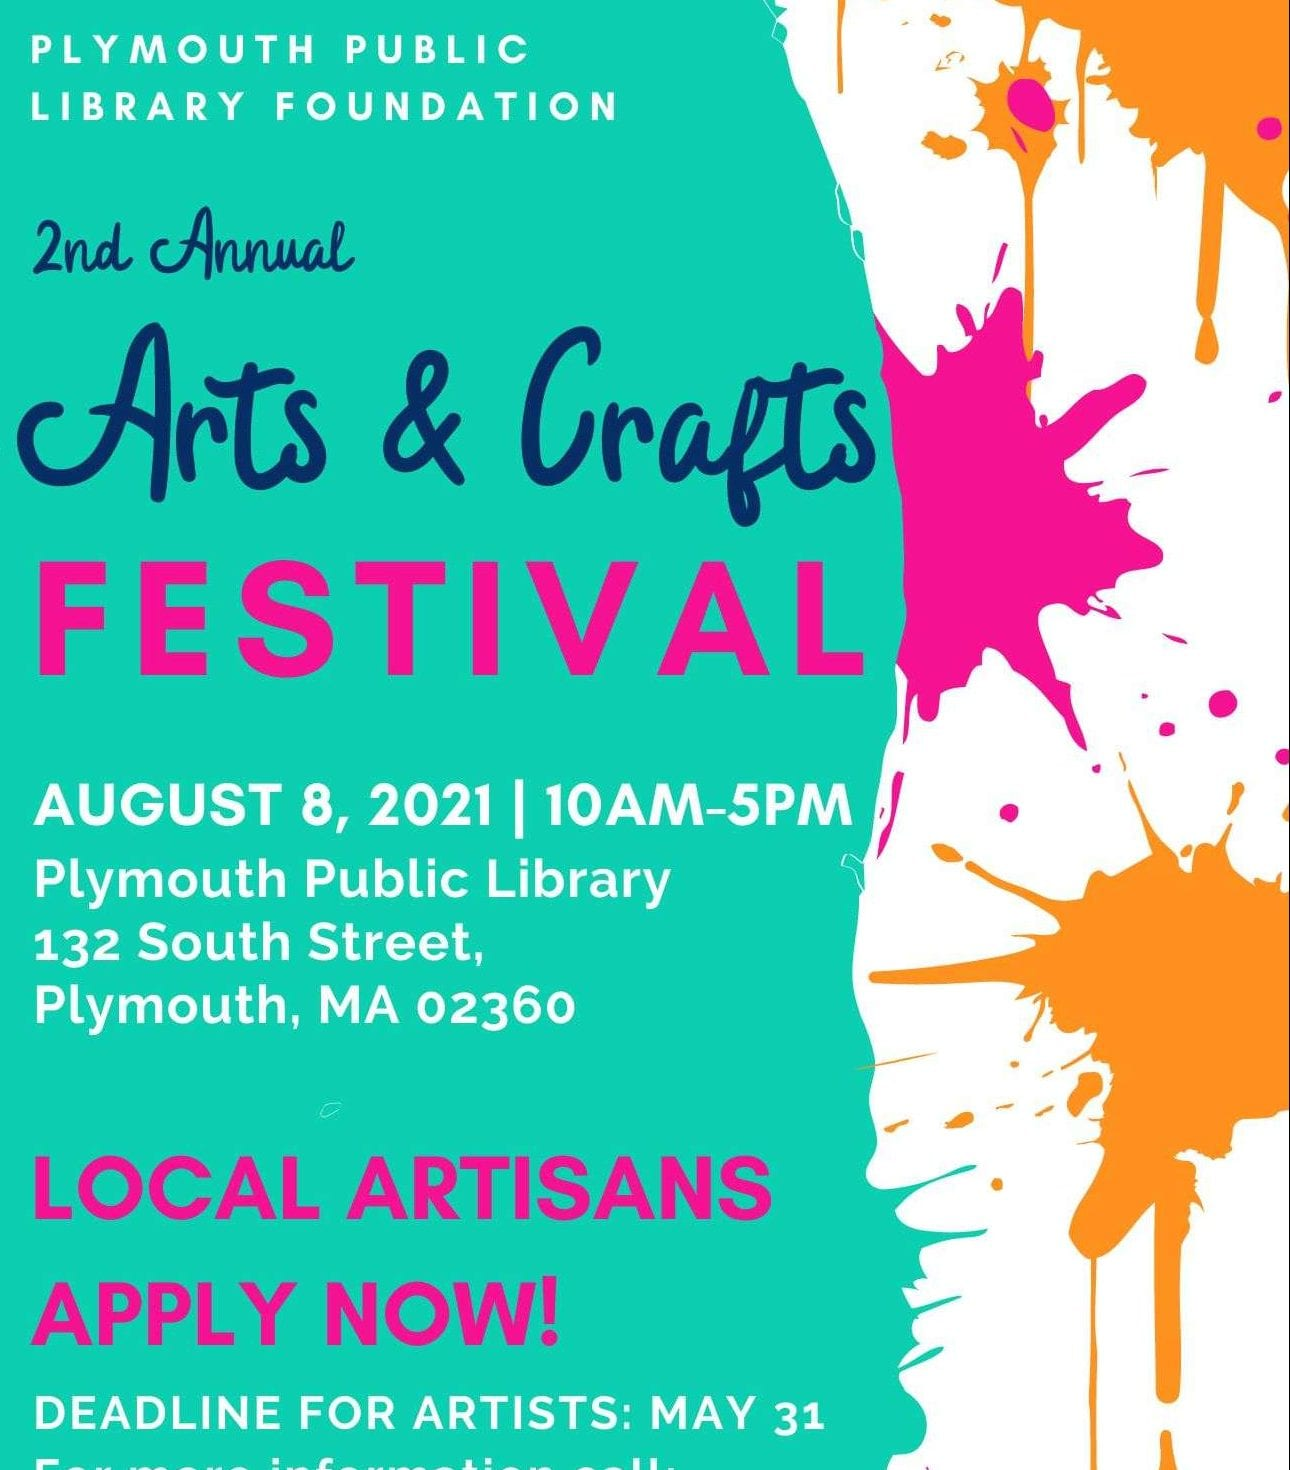 Plymouth Public Library event